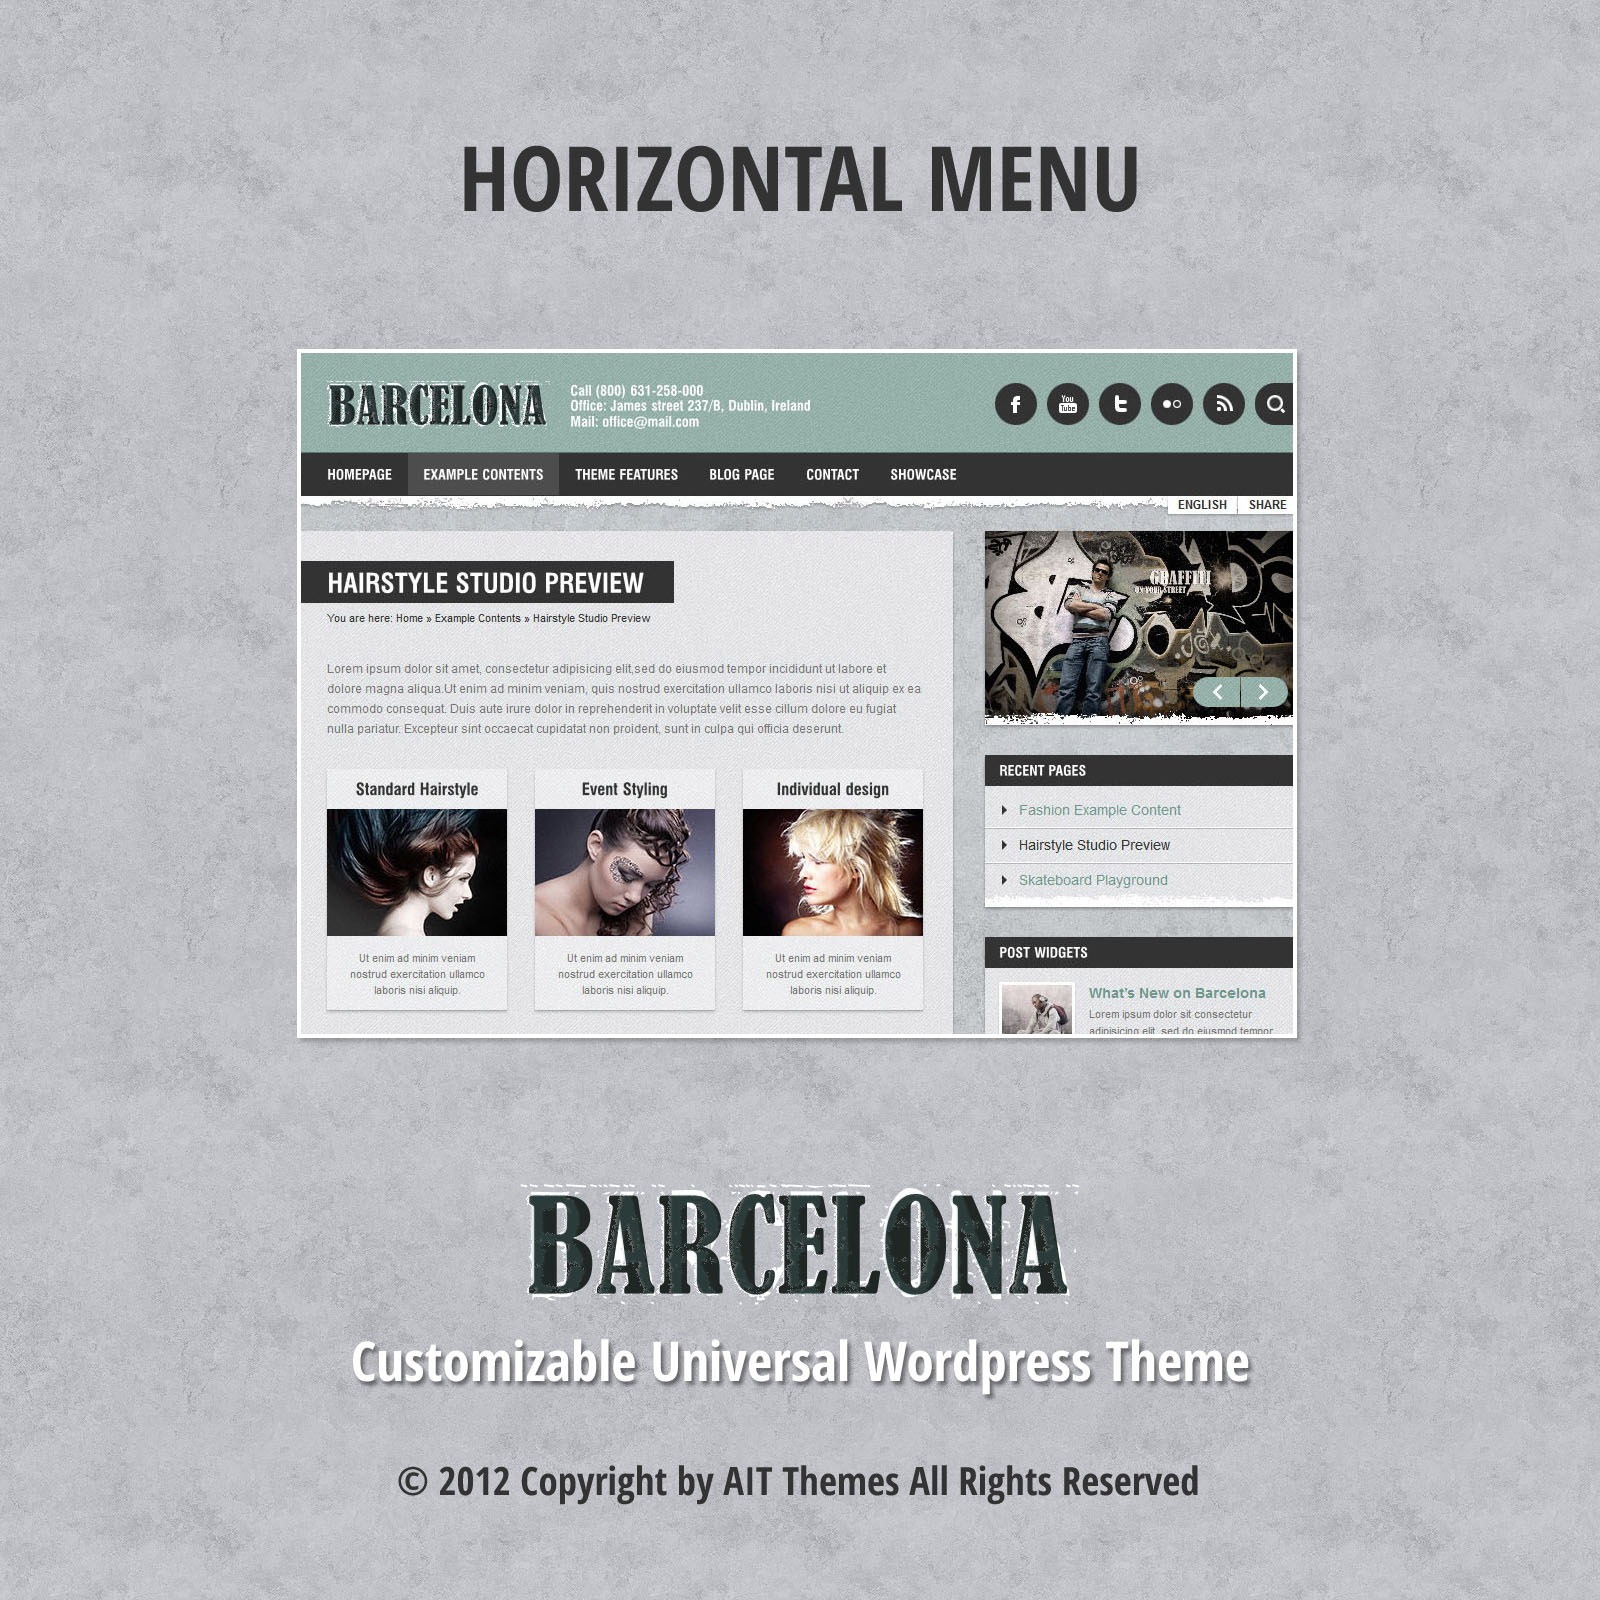 Horisontal menu